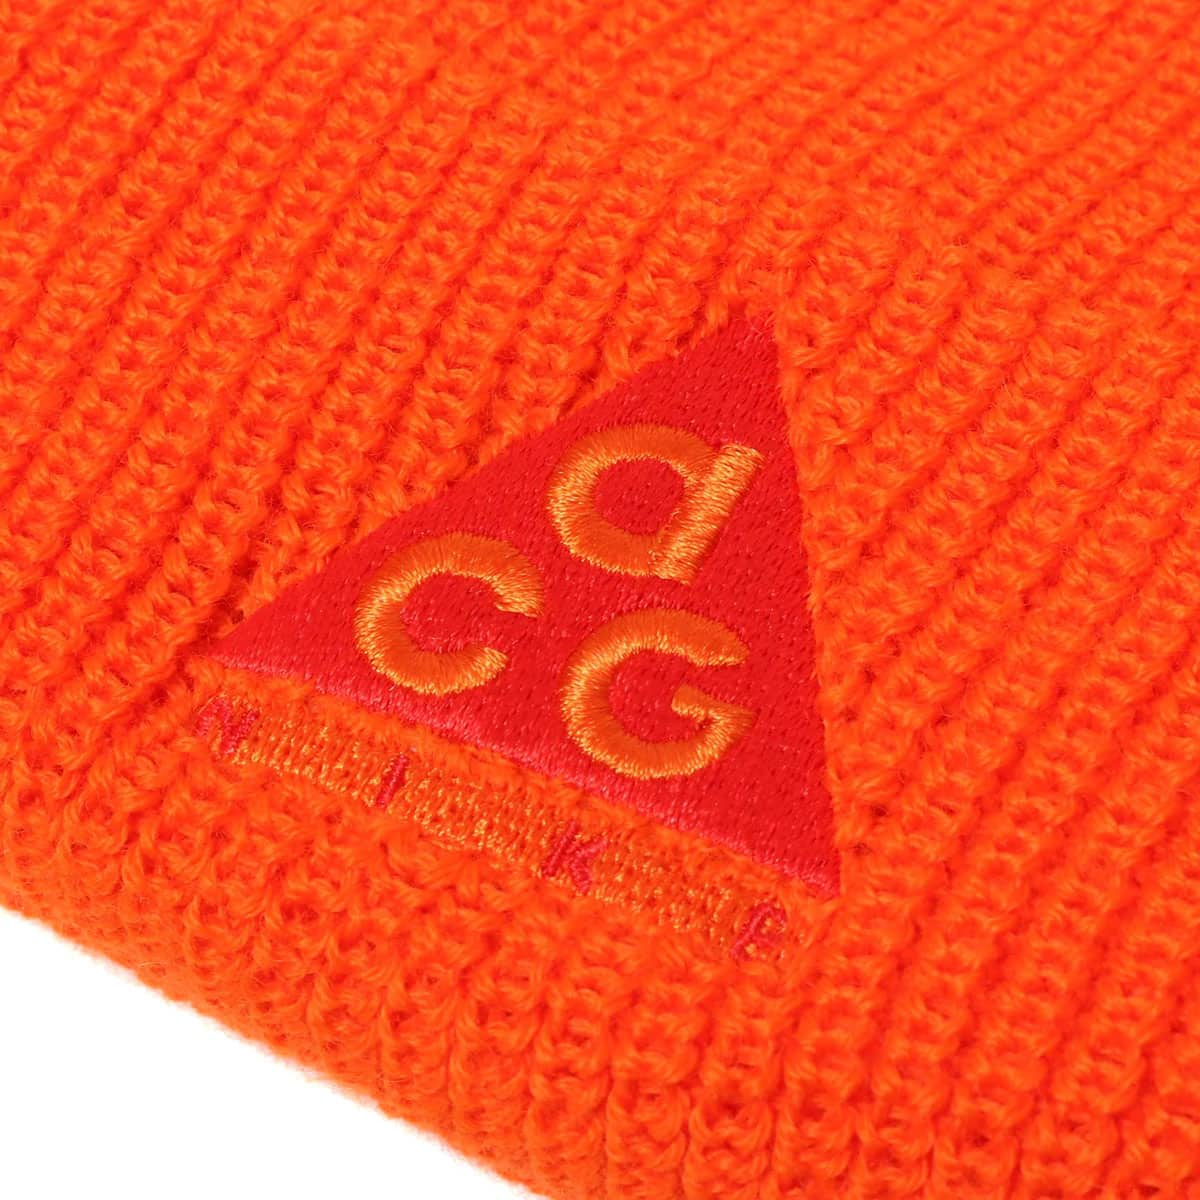 a367298e1507a0 ... BEANIE ACG SAFETY ORANGE/HABANERO RED 19SU-S_photo_large. 【お取り寄せ商品】【NIKE  2019SUMMER】